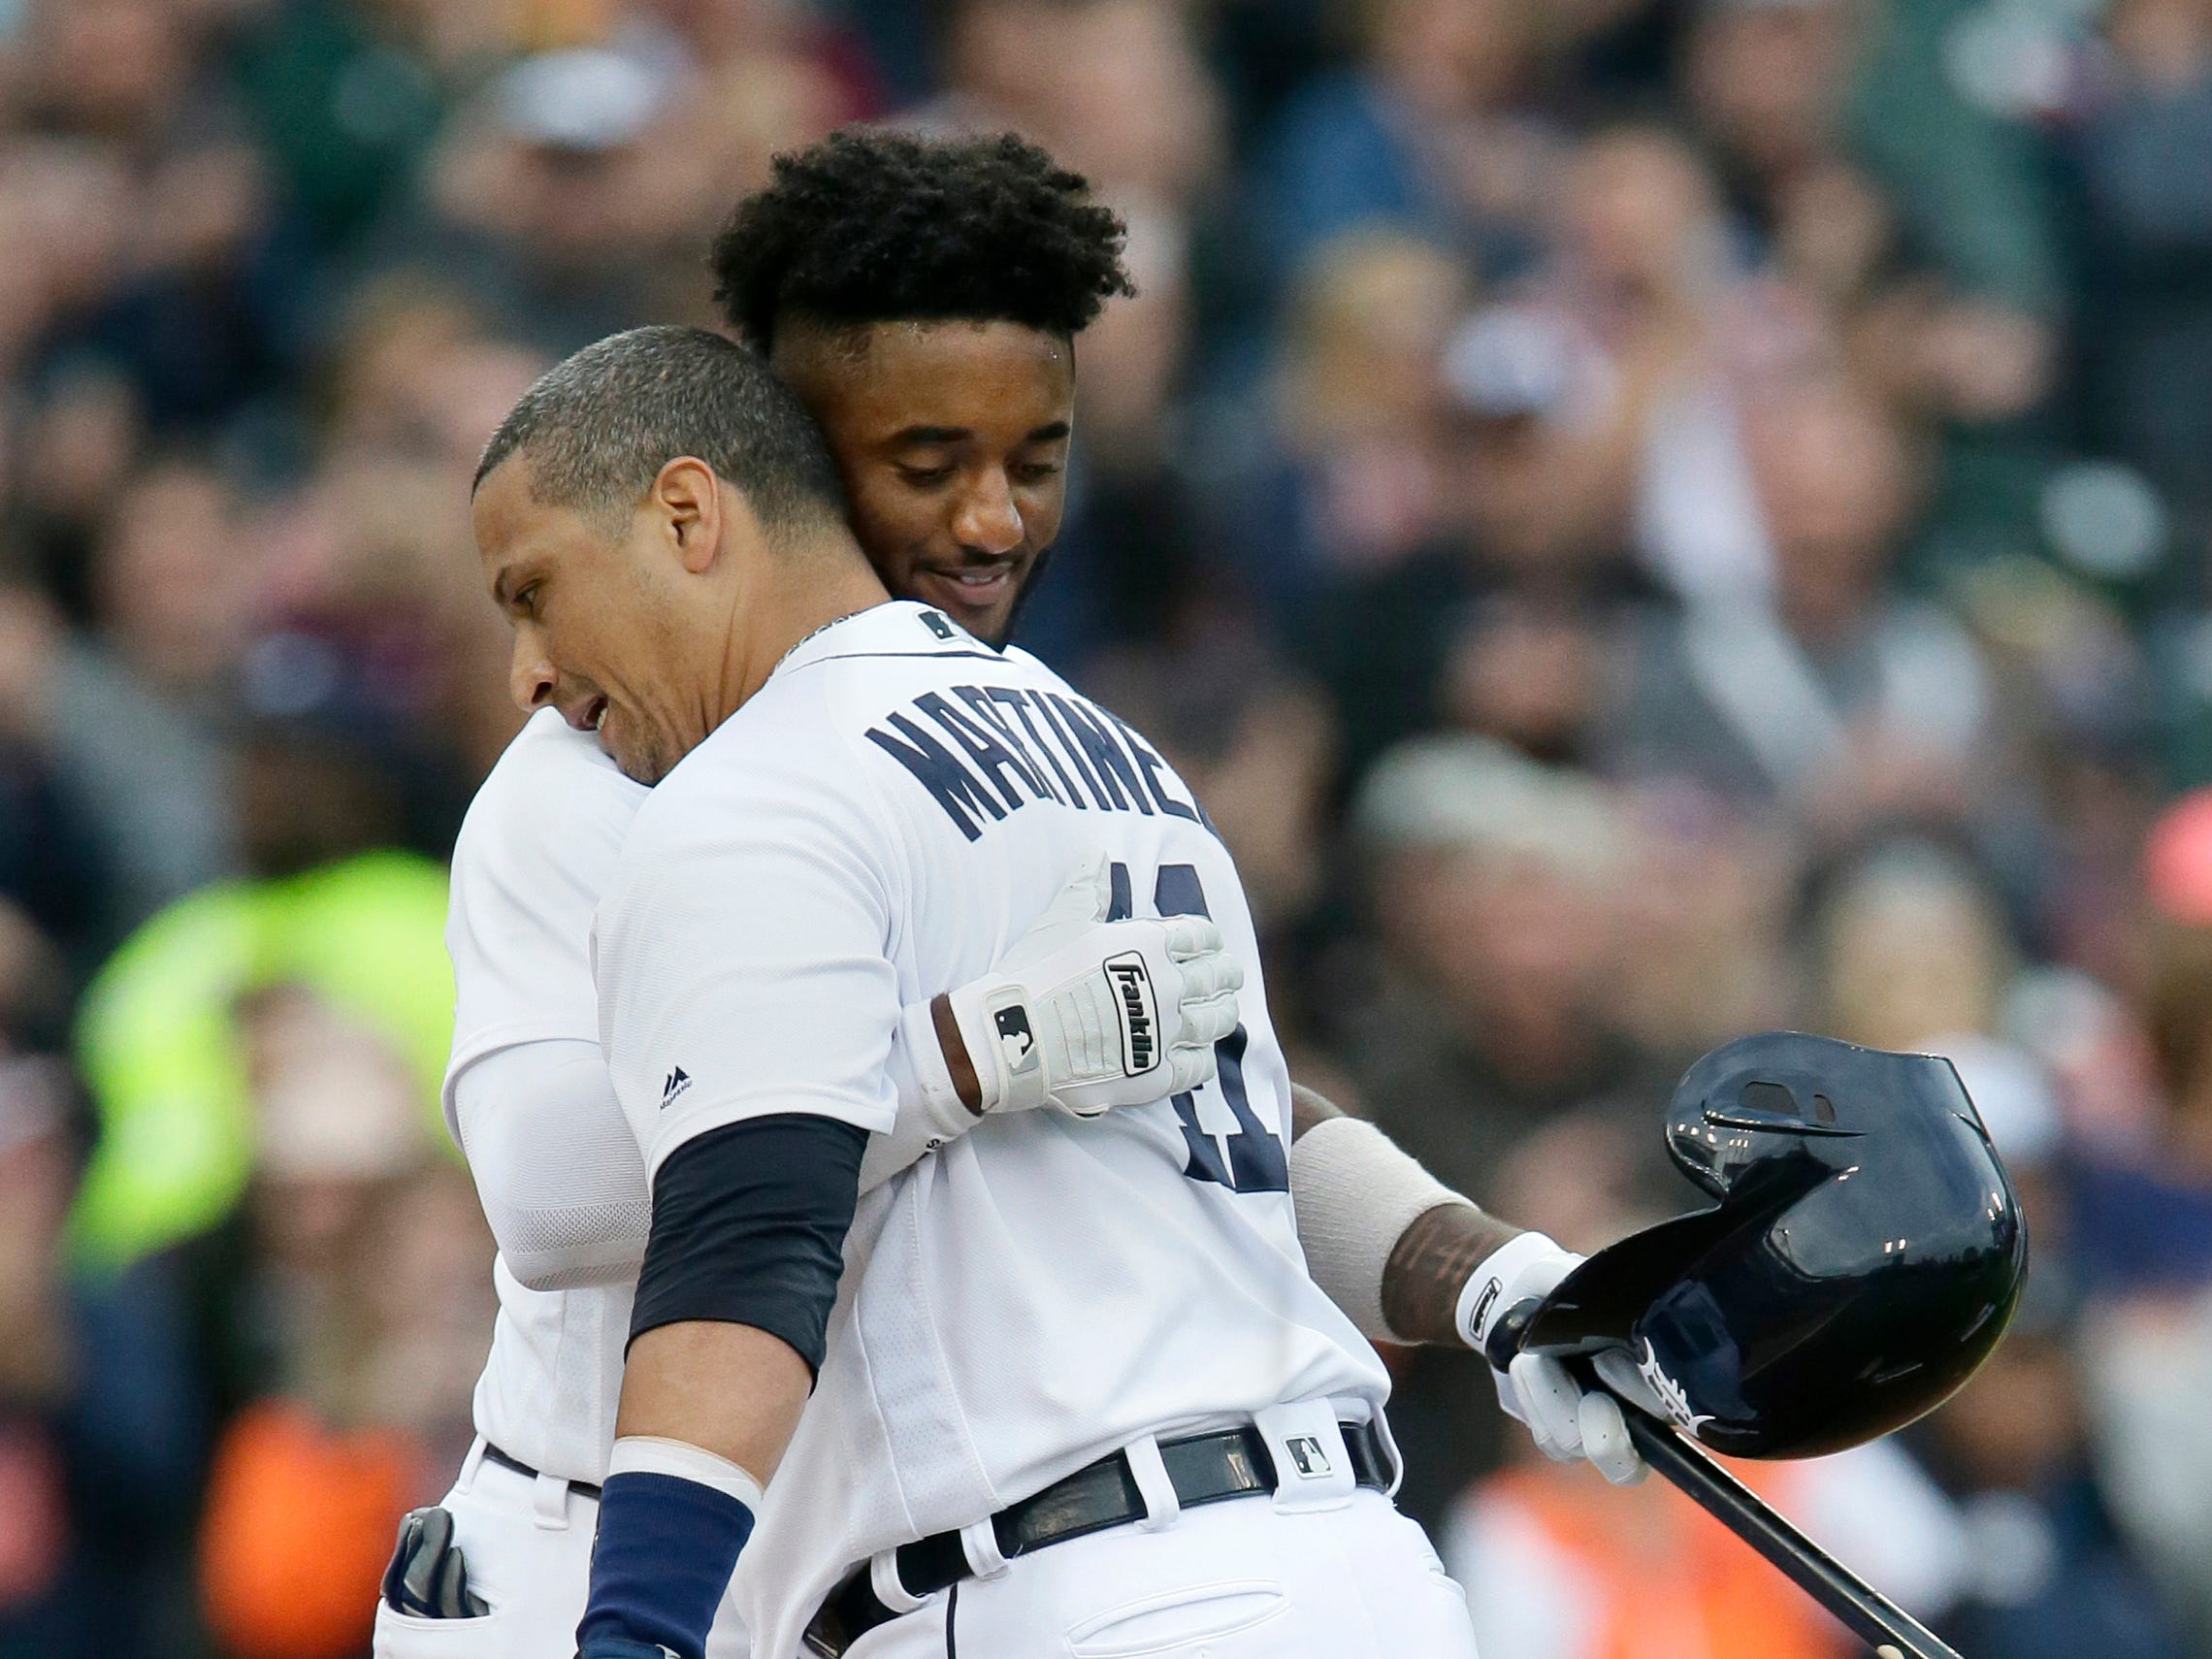 Detroit Tigers' Victor Martinez and Niko Goodrum embrace as Martinez leaves the game for a pinch-runner after hitting a single during the first inning of his final MLB game Sept. 22, 2018 in Detroit.